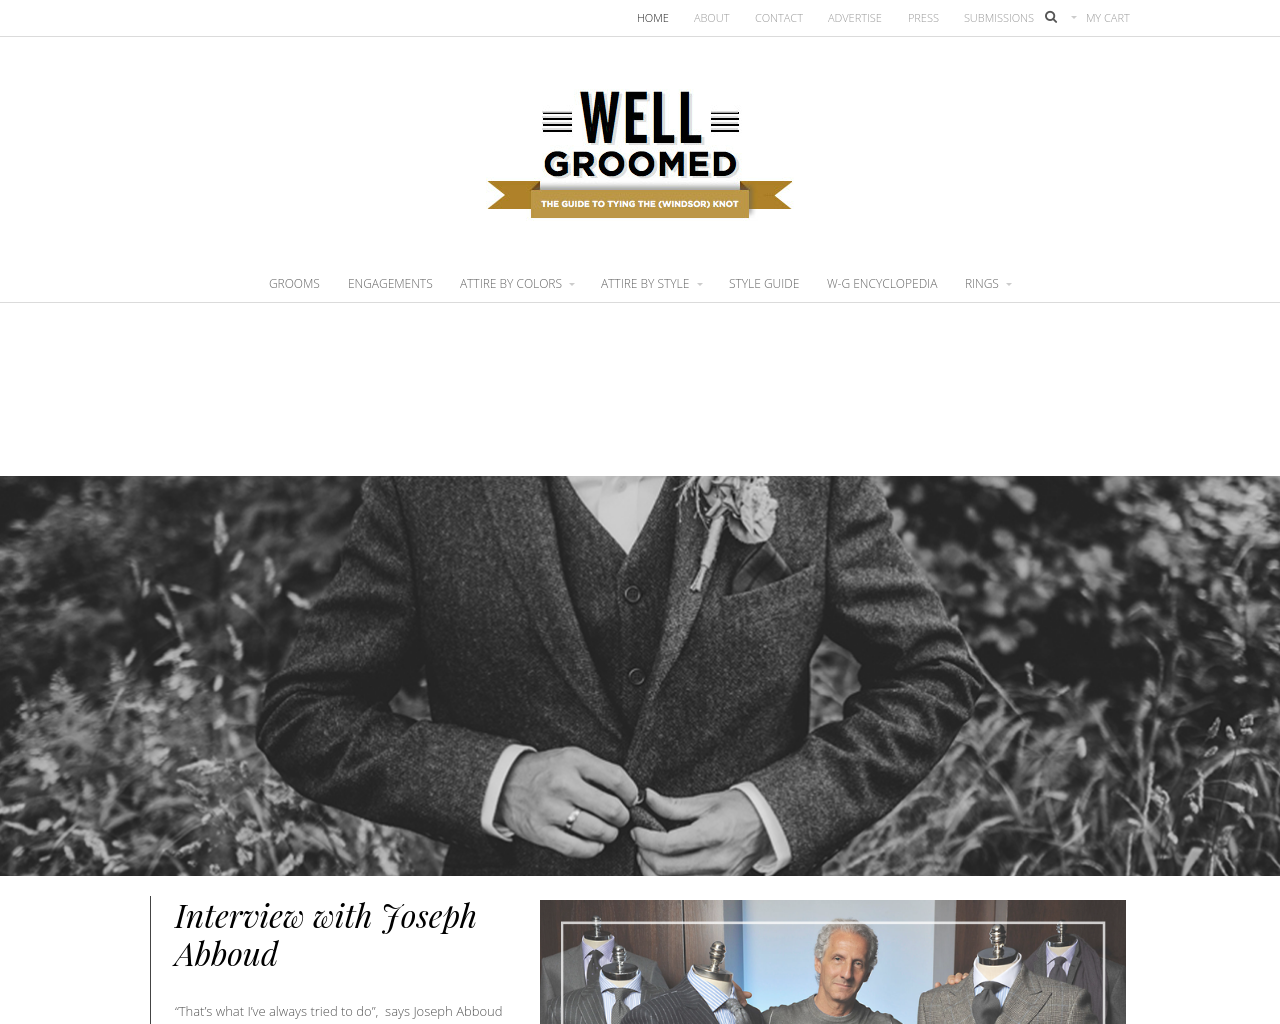 Well-Groomed-Advertising-Reviews-Pricing